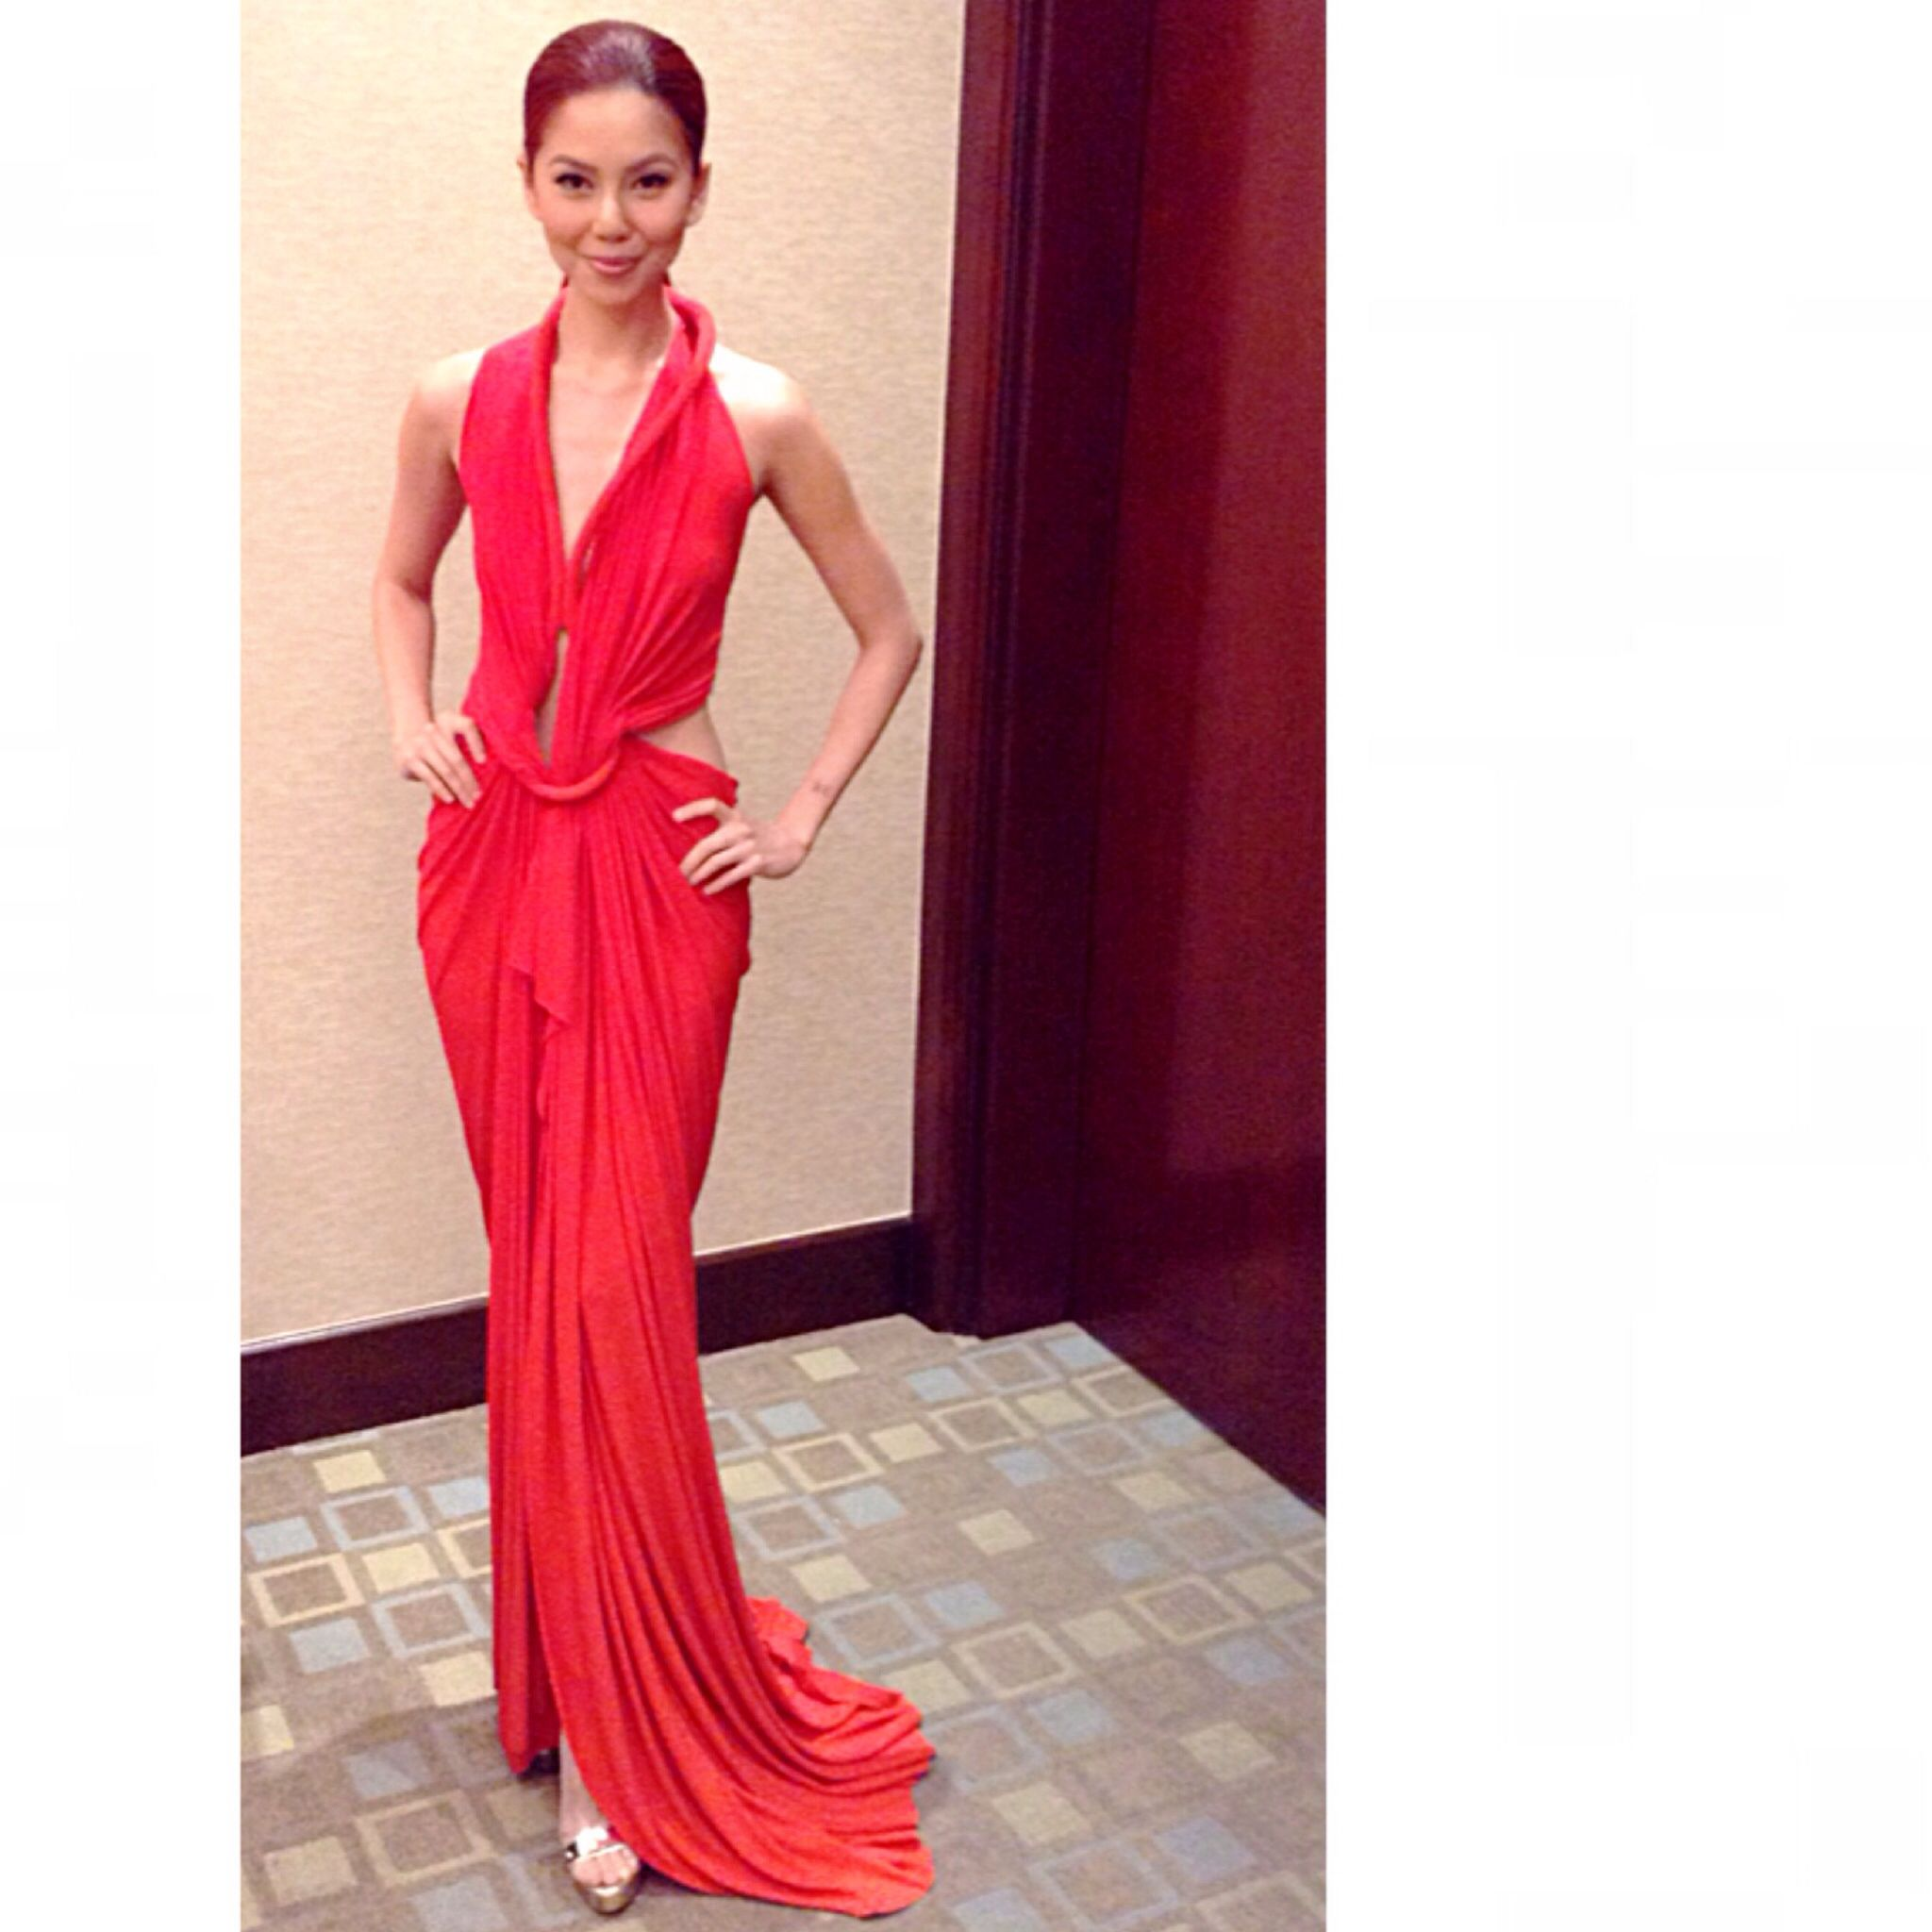 Bianca Valerio in Rajo Laurel to host People of the Year Awards 2014  (People Asia